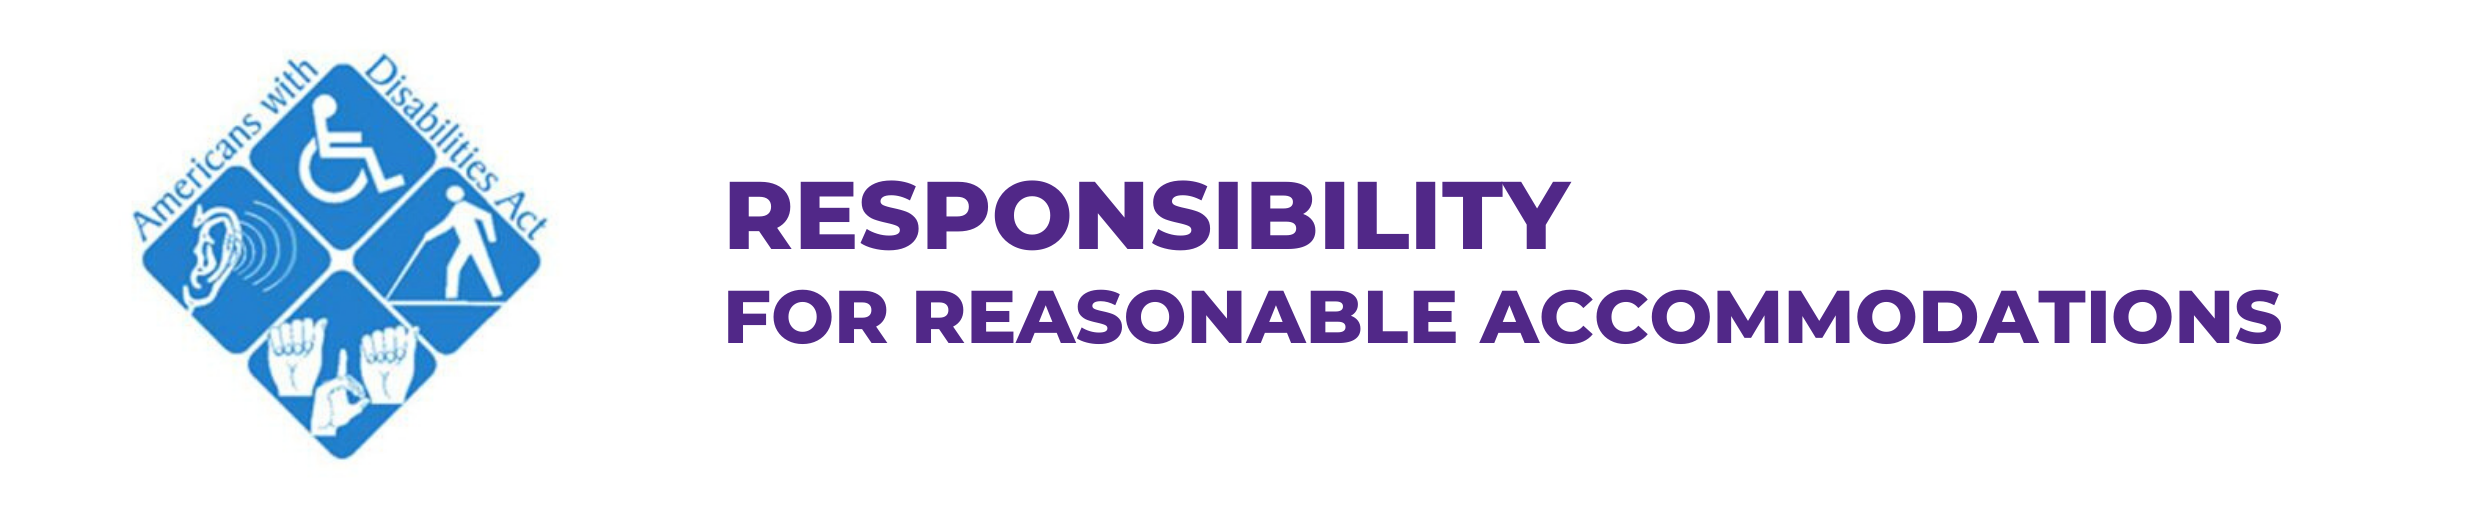 Responsibility for Reasonable Accommodations